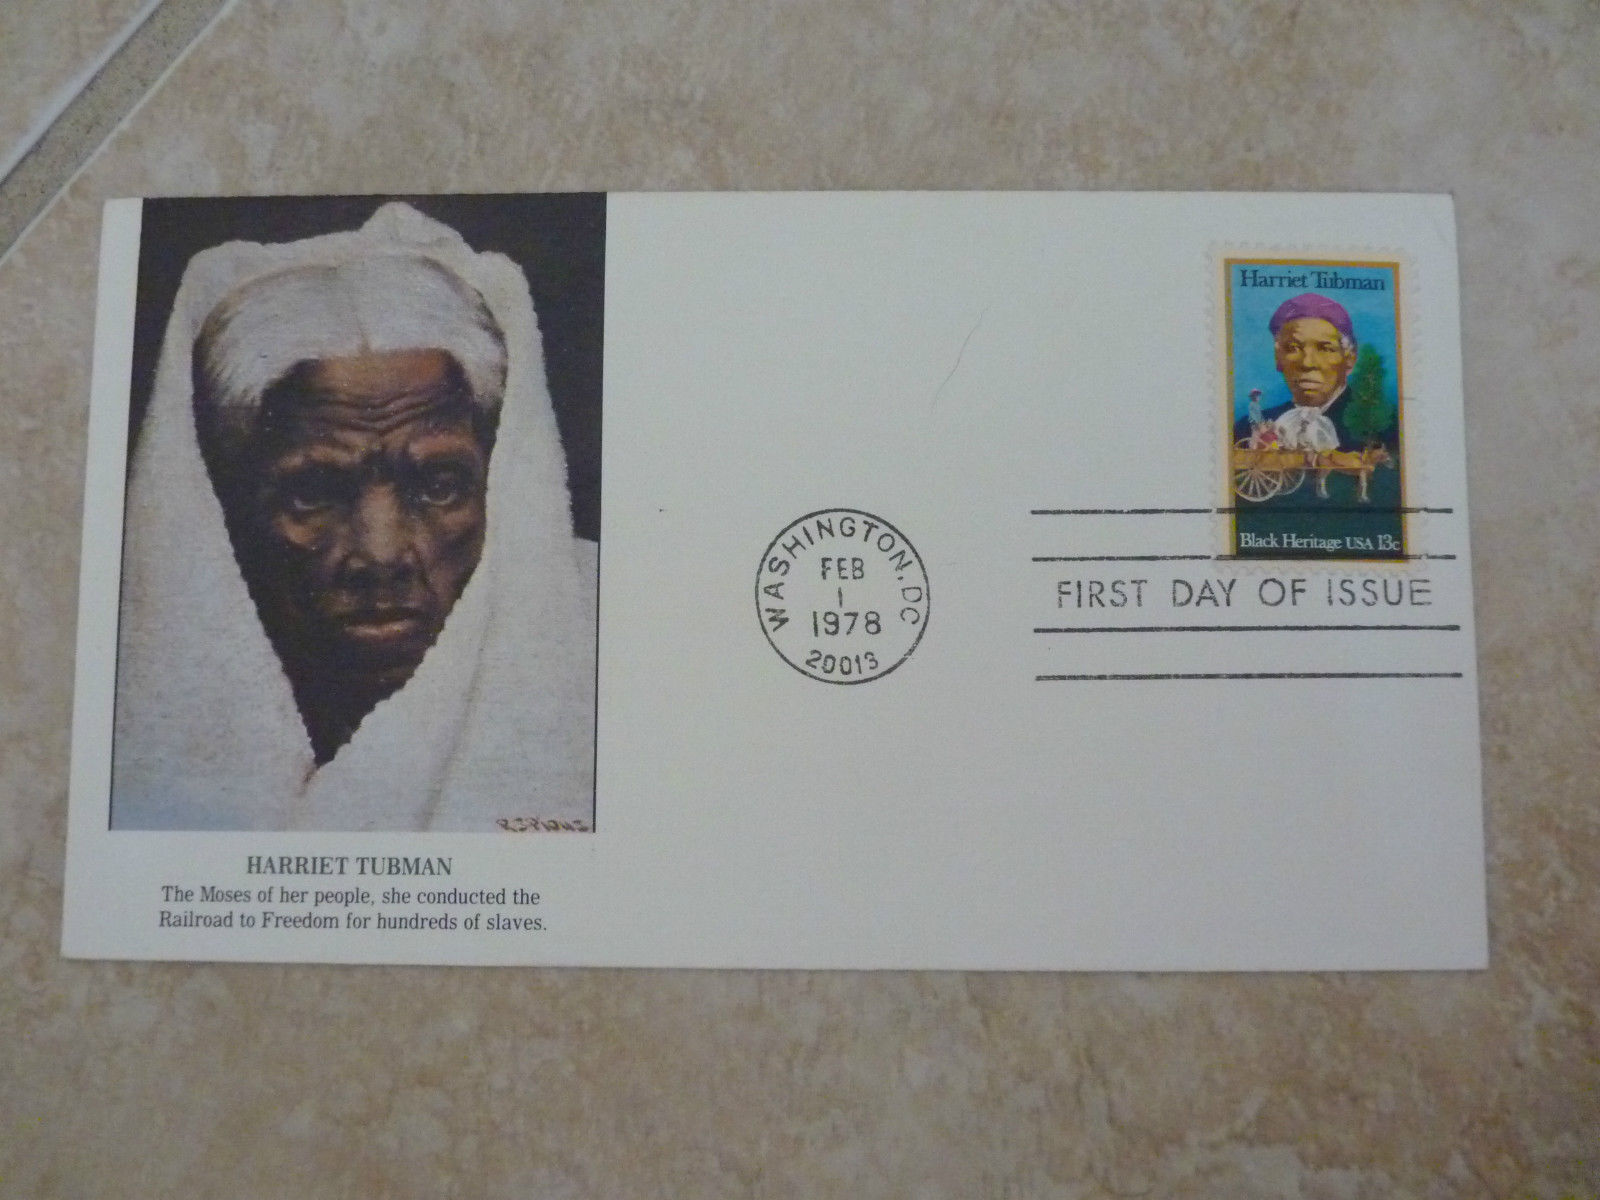 Official First Day Cover Stamp Harriet Tubman Railroad to Freedom 1978